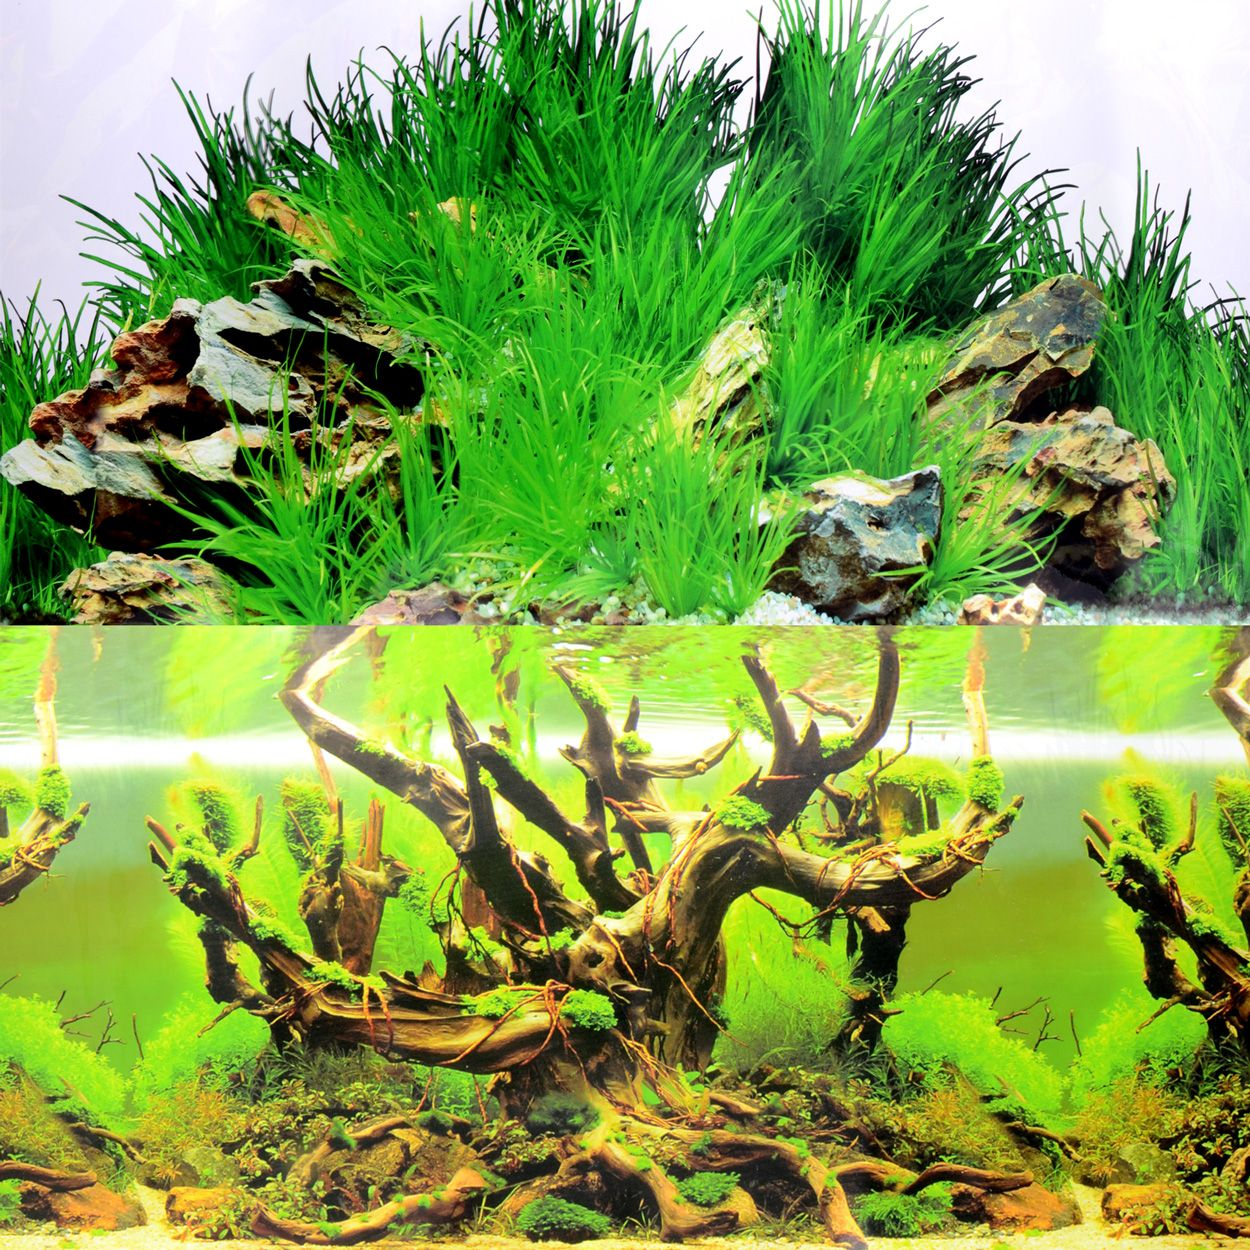 Underwater Treasures Grassy Tree & Boulder Reversible Background - 20 inch (Sold by the Foot)